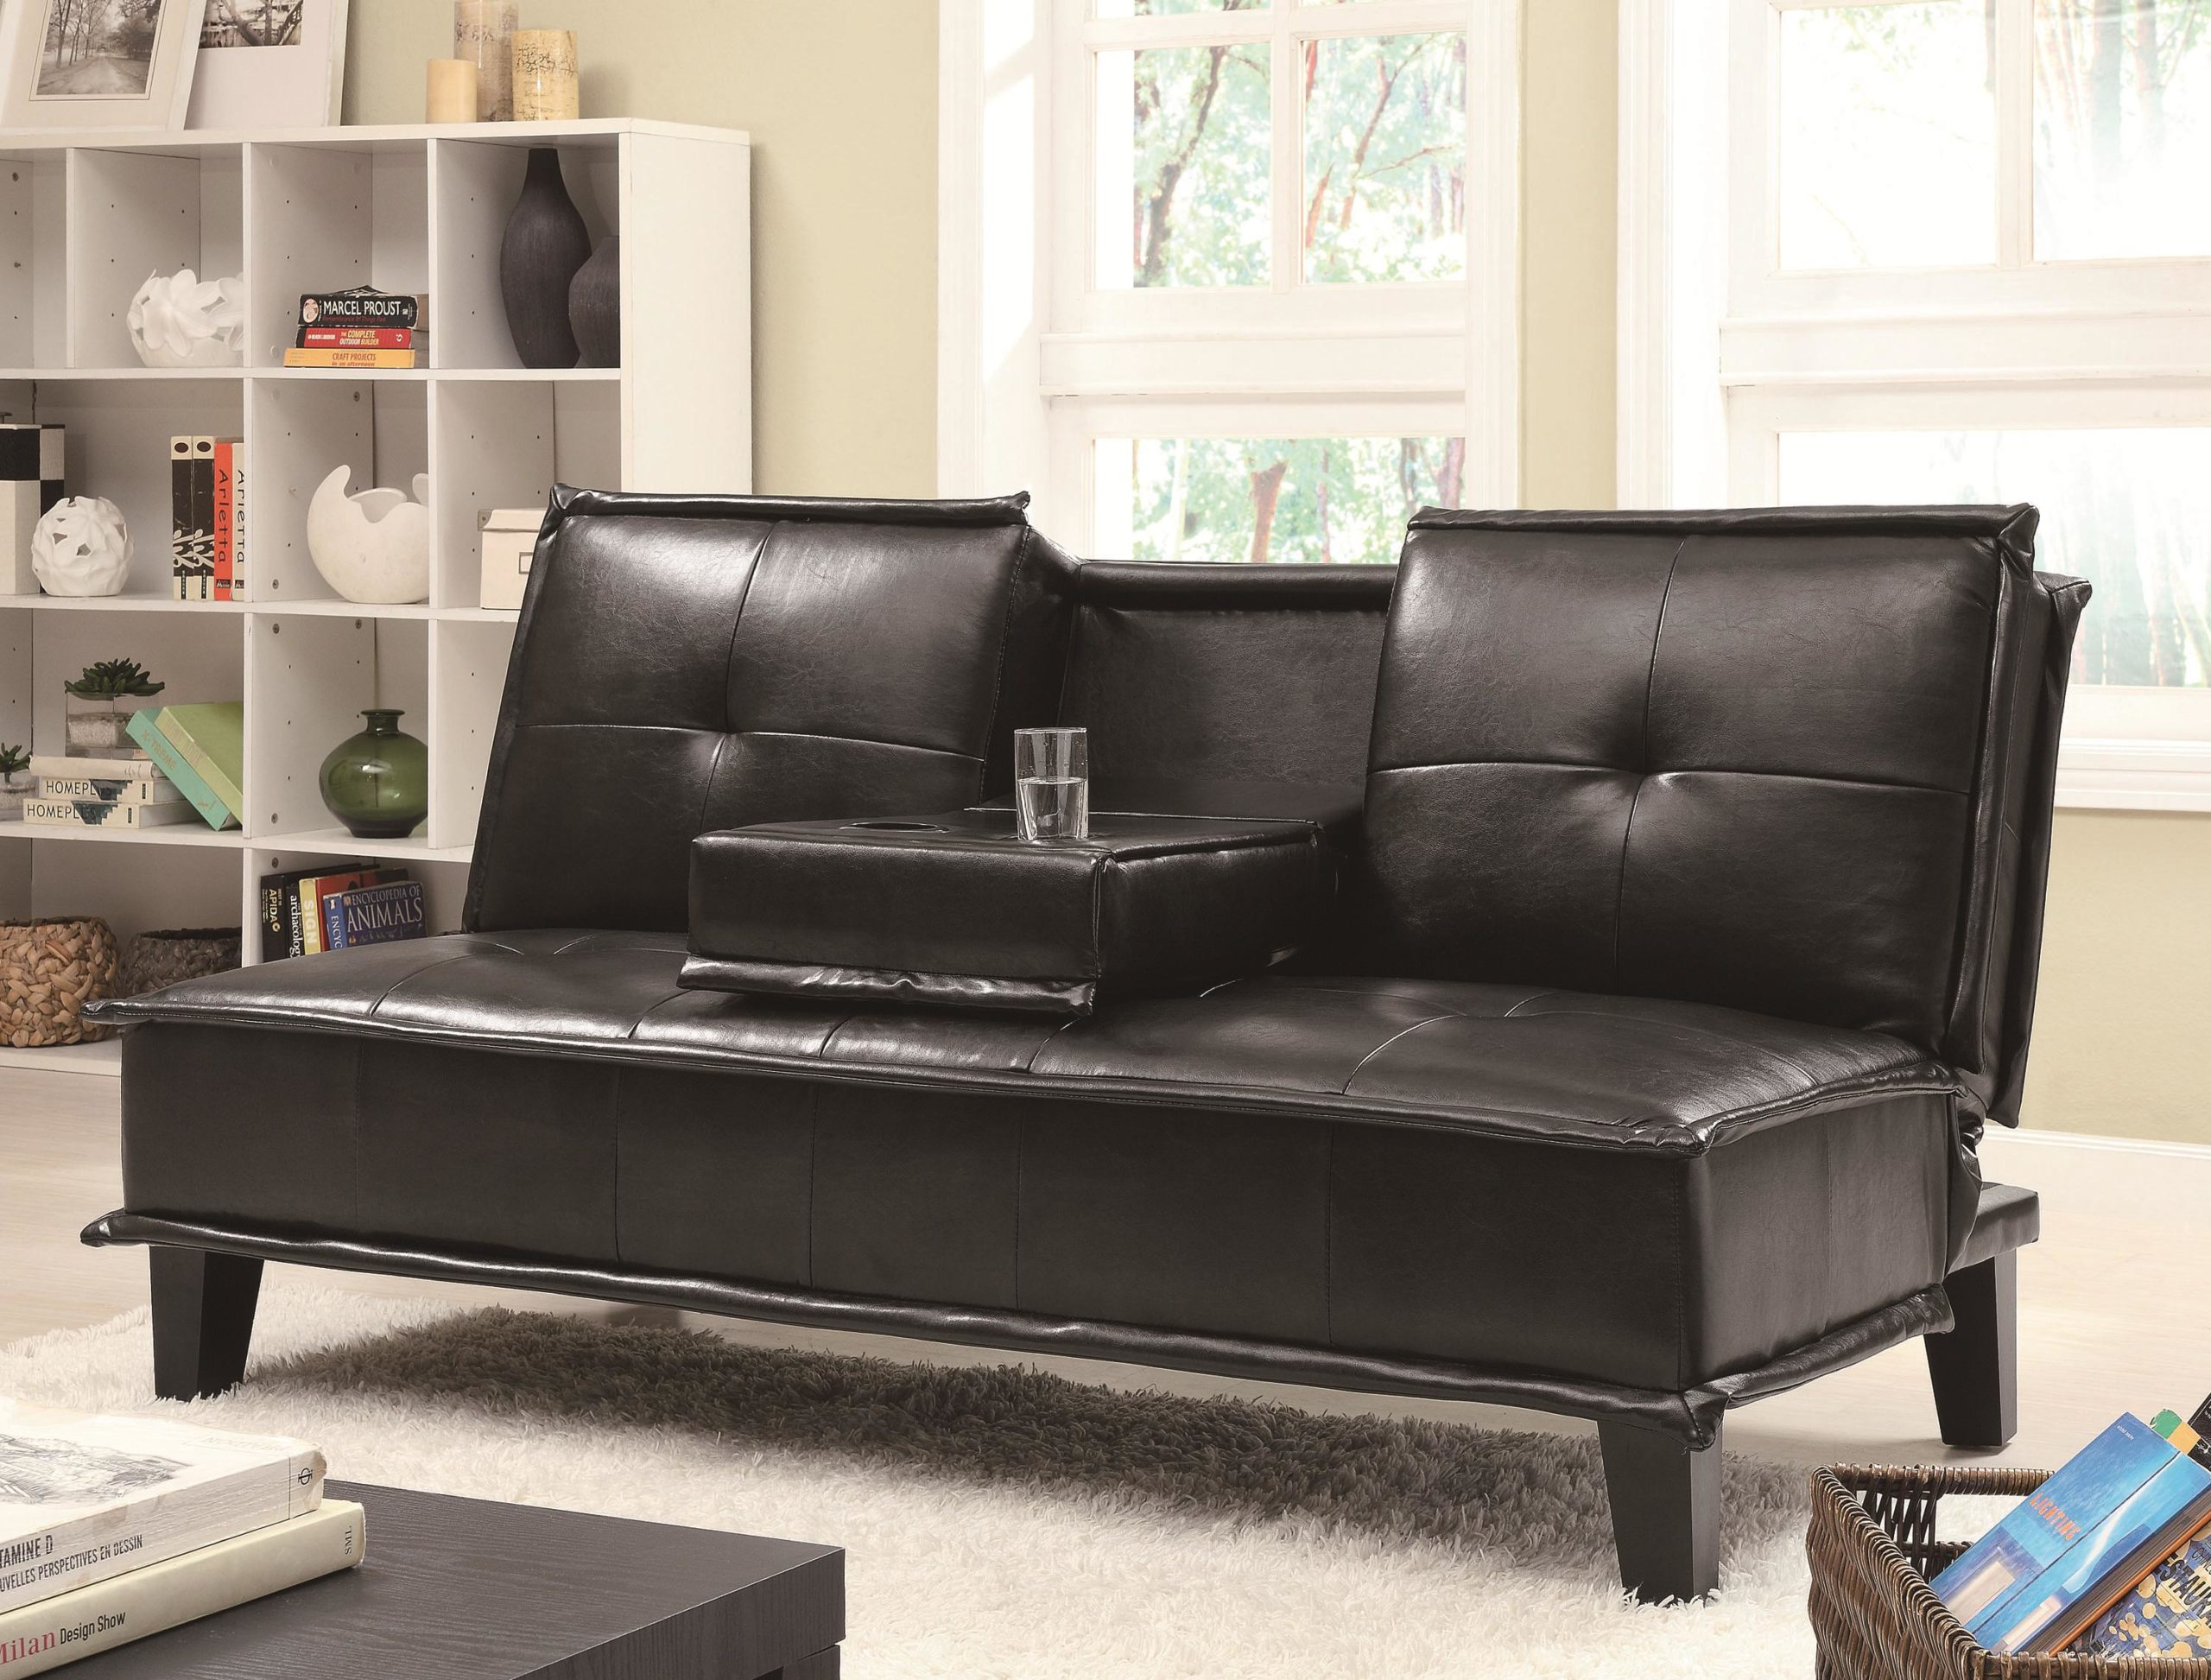 Brown Contemporary Vinyl Sofa Bed with Drop Down Table